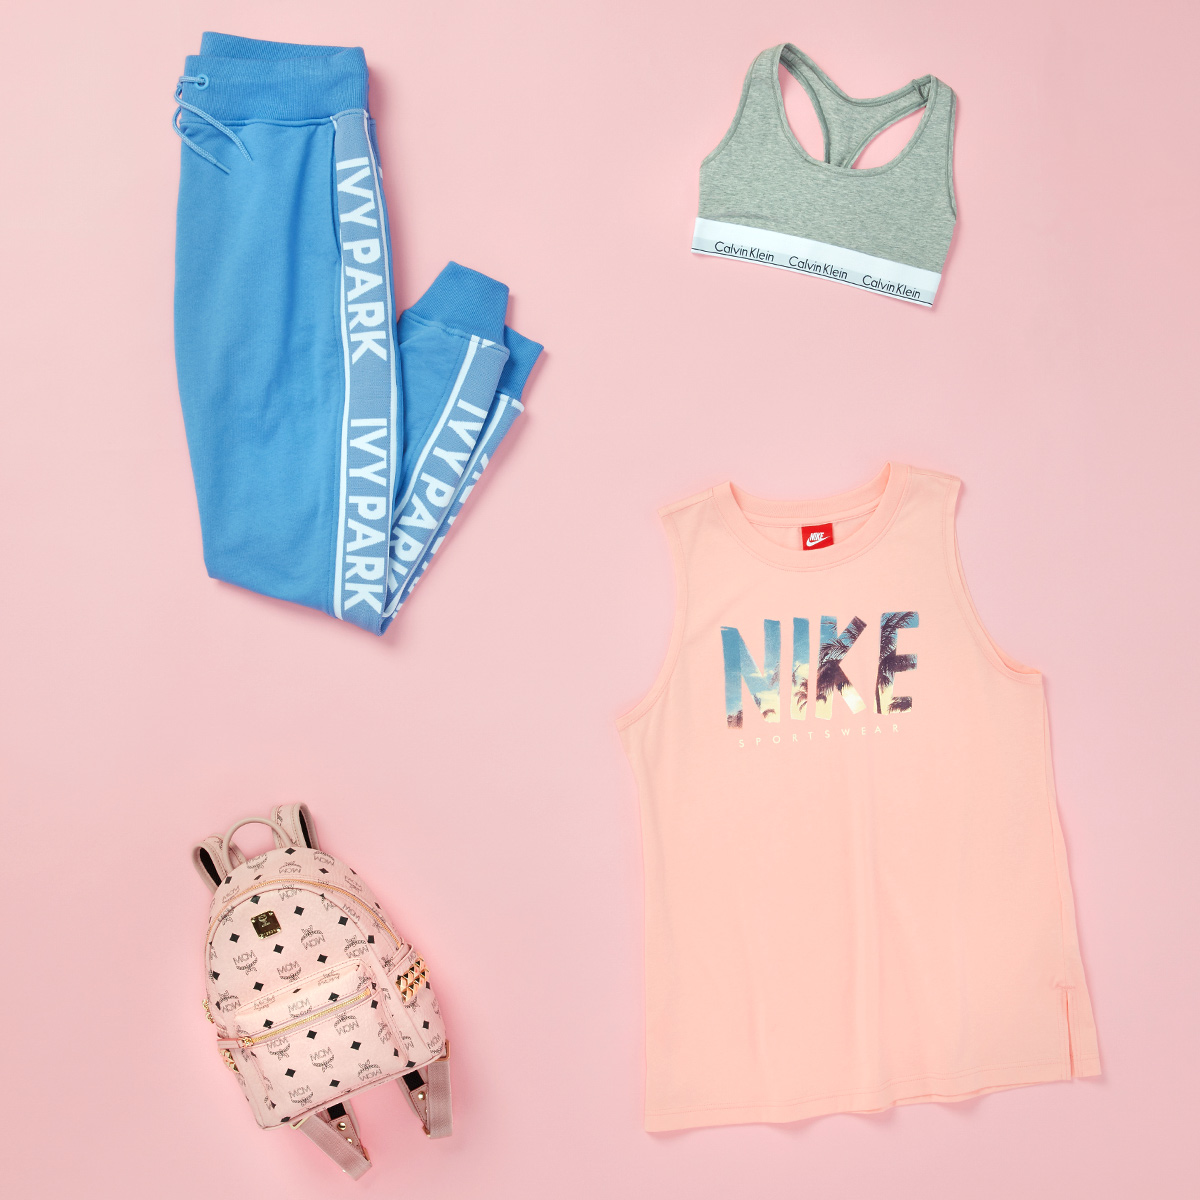 Four women's fashion items - jogging pants, a patterned backpack, a sports bra, and a t-shirt laid flat (with garment logos prominently displayed) - on a pink background.